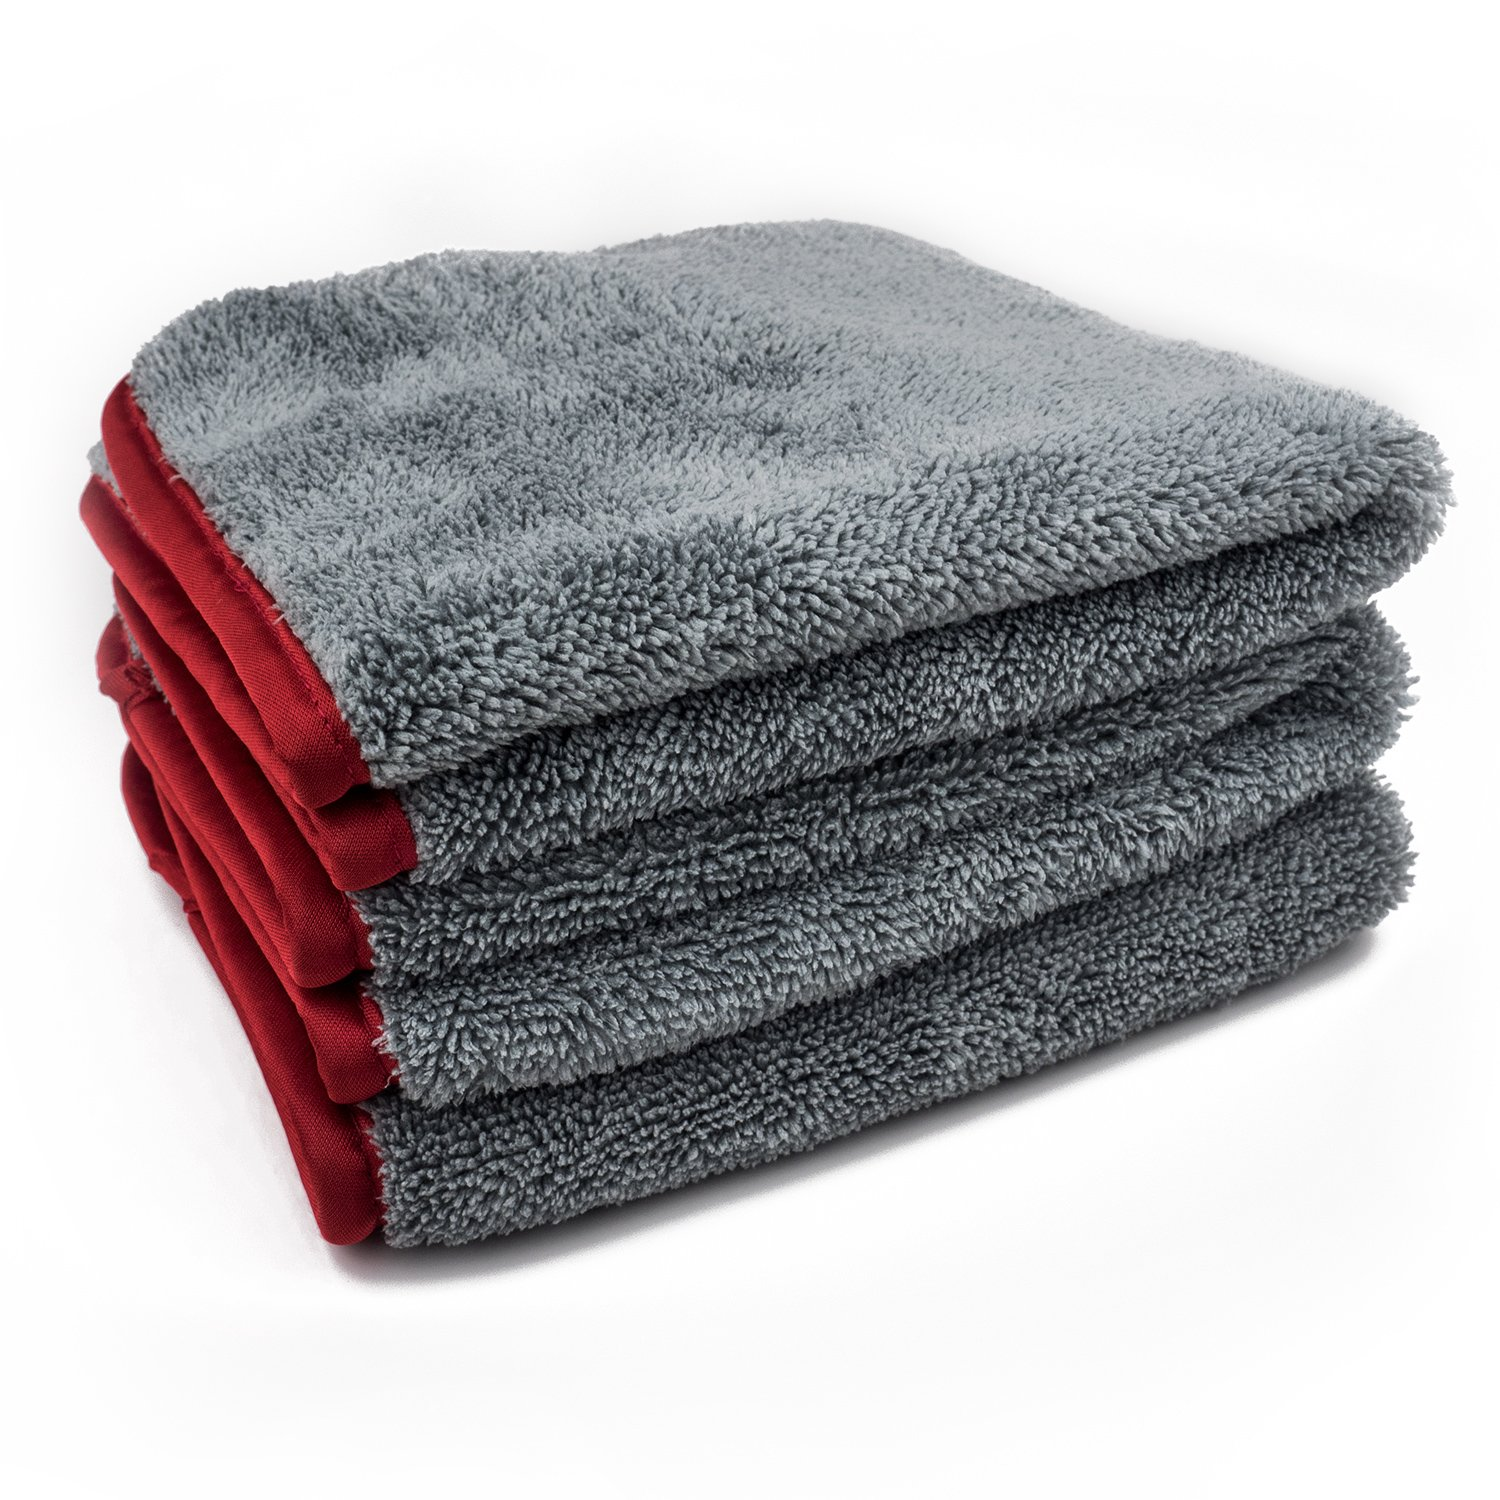 Set of 3 - Ultra Plush 650GSM Chinchilla Microfiber Towel 16x16' - Super Soft, Scratch Free Towels - Great for Waterless Wash, Quick Detail, Interior Dusting Detail Buddy DB-600GSM3PK